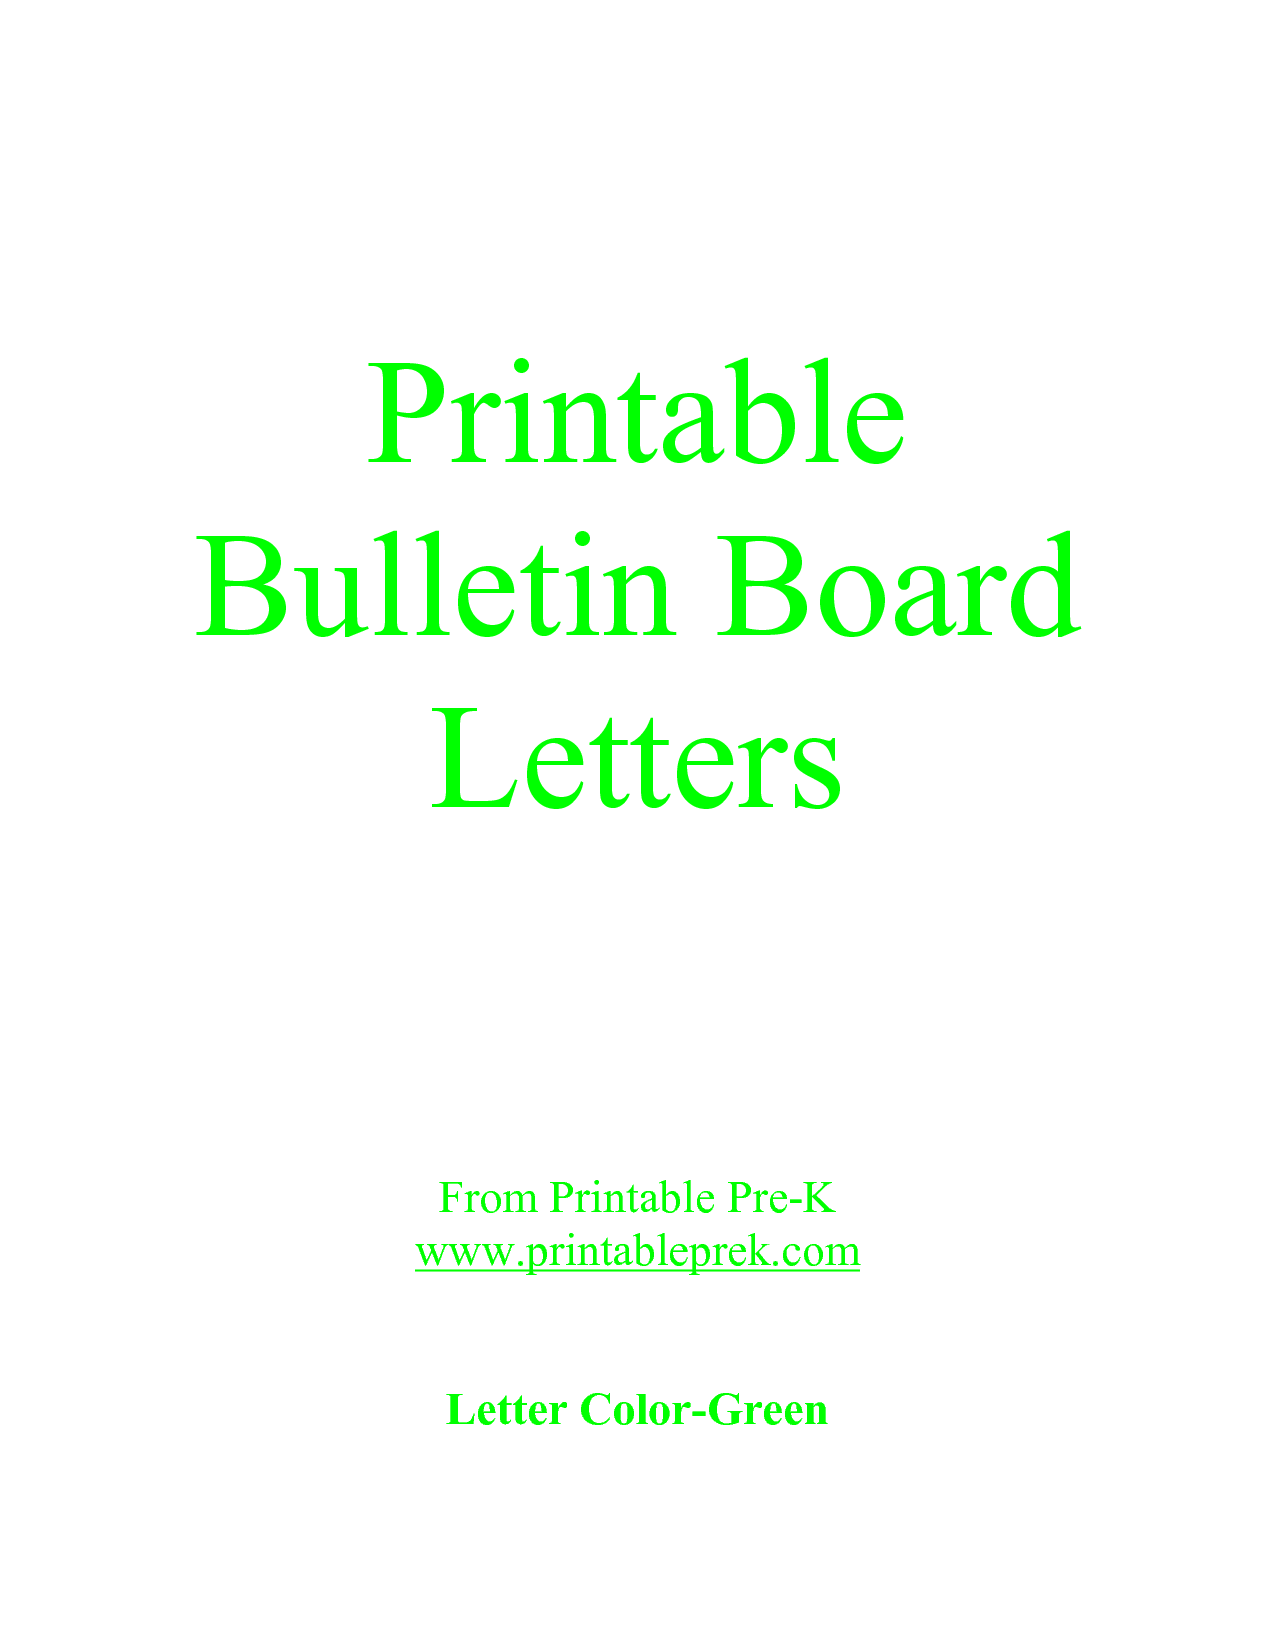 Letter printable images gallery category page 17 for Letters for bulletin boards templates